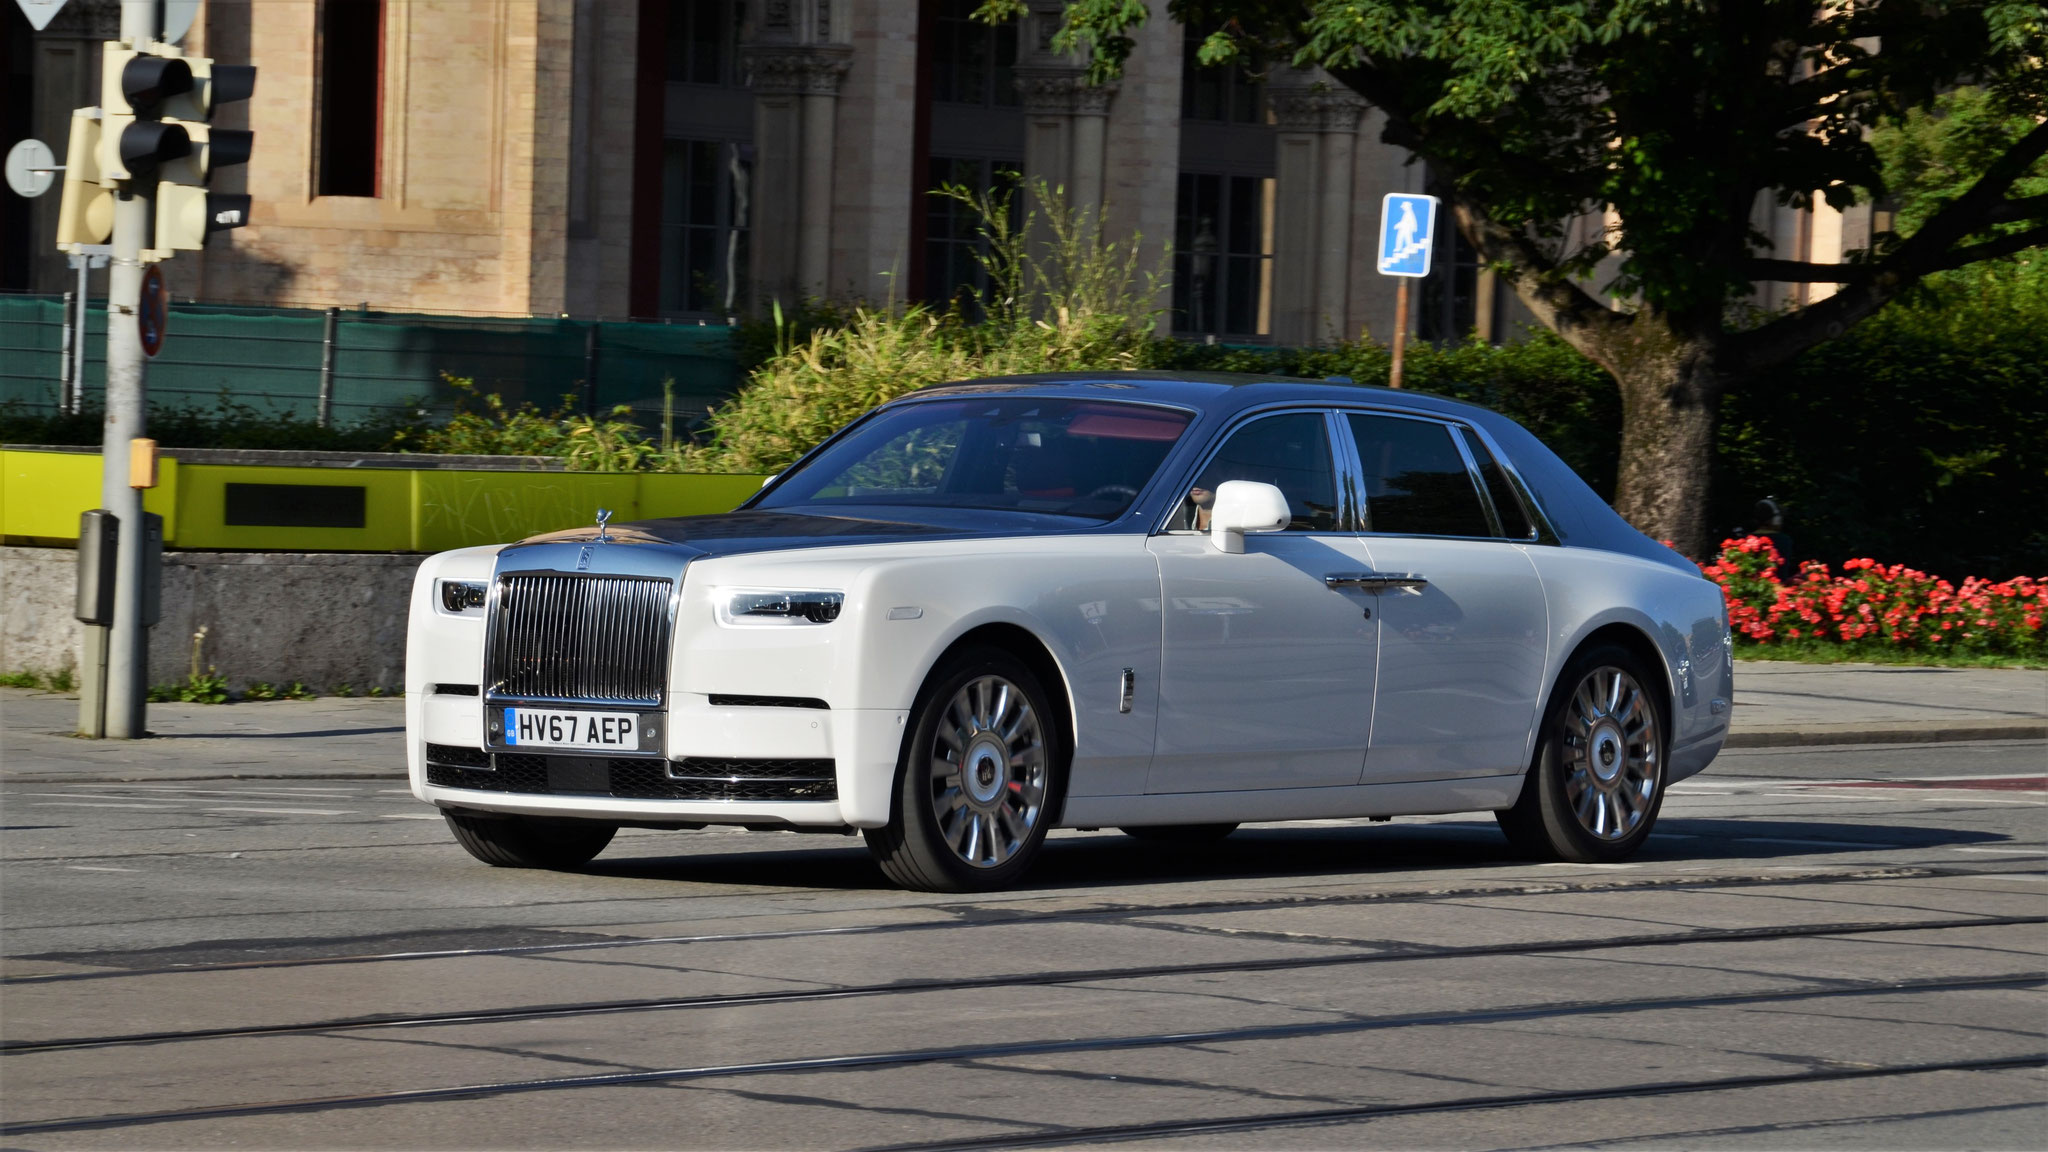 Rolls Royce Phantom - HV67-AEP (GB)